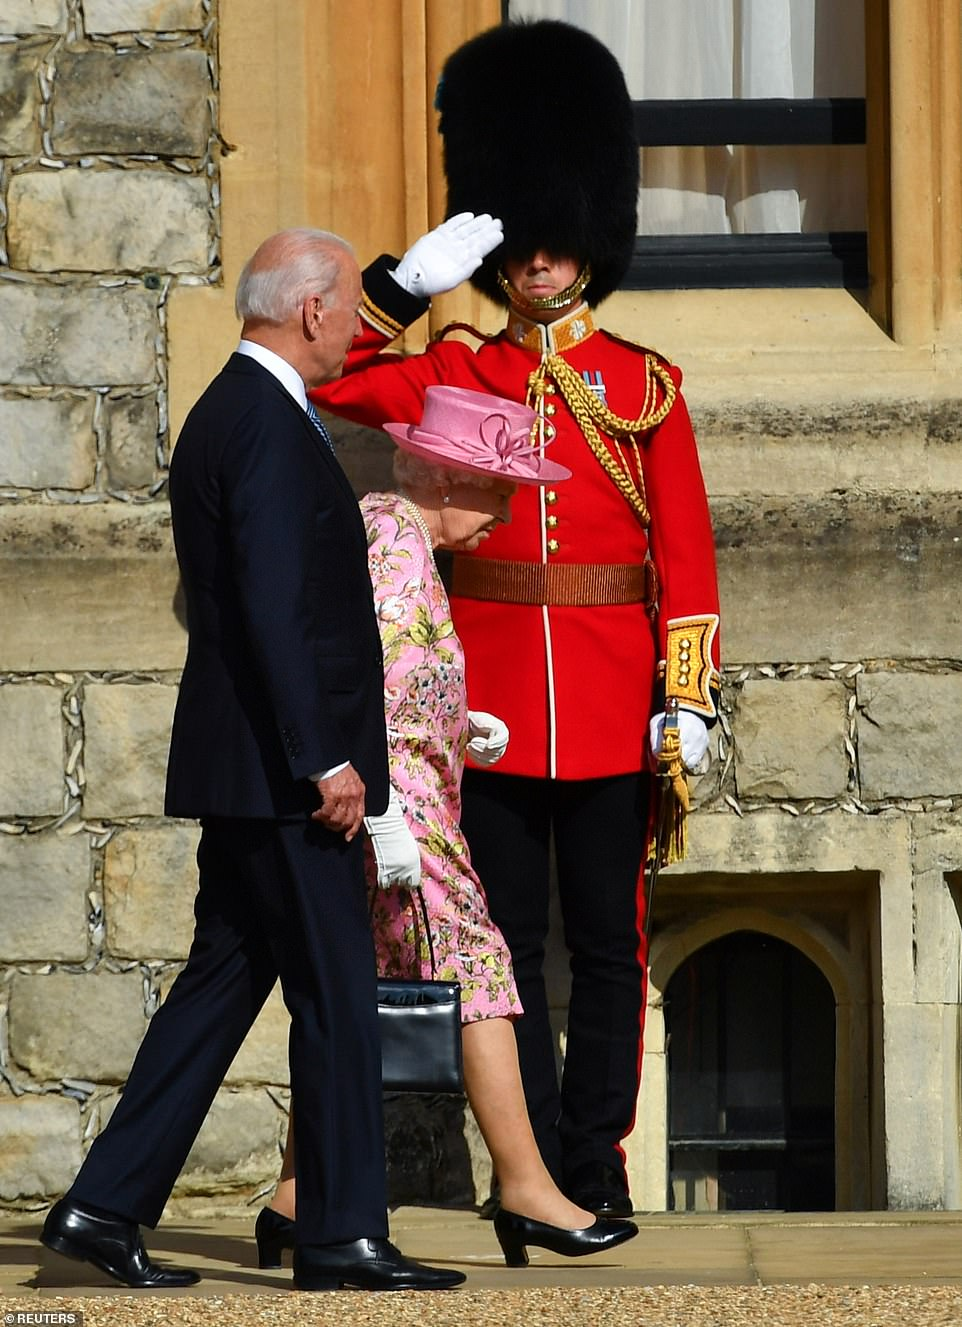 The Queen and US President Joe Biden are saluted as they walk on the grounds of Windsor Castle on June 13